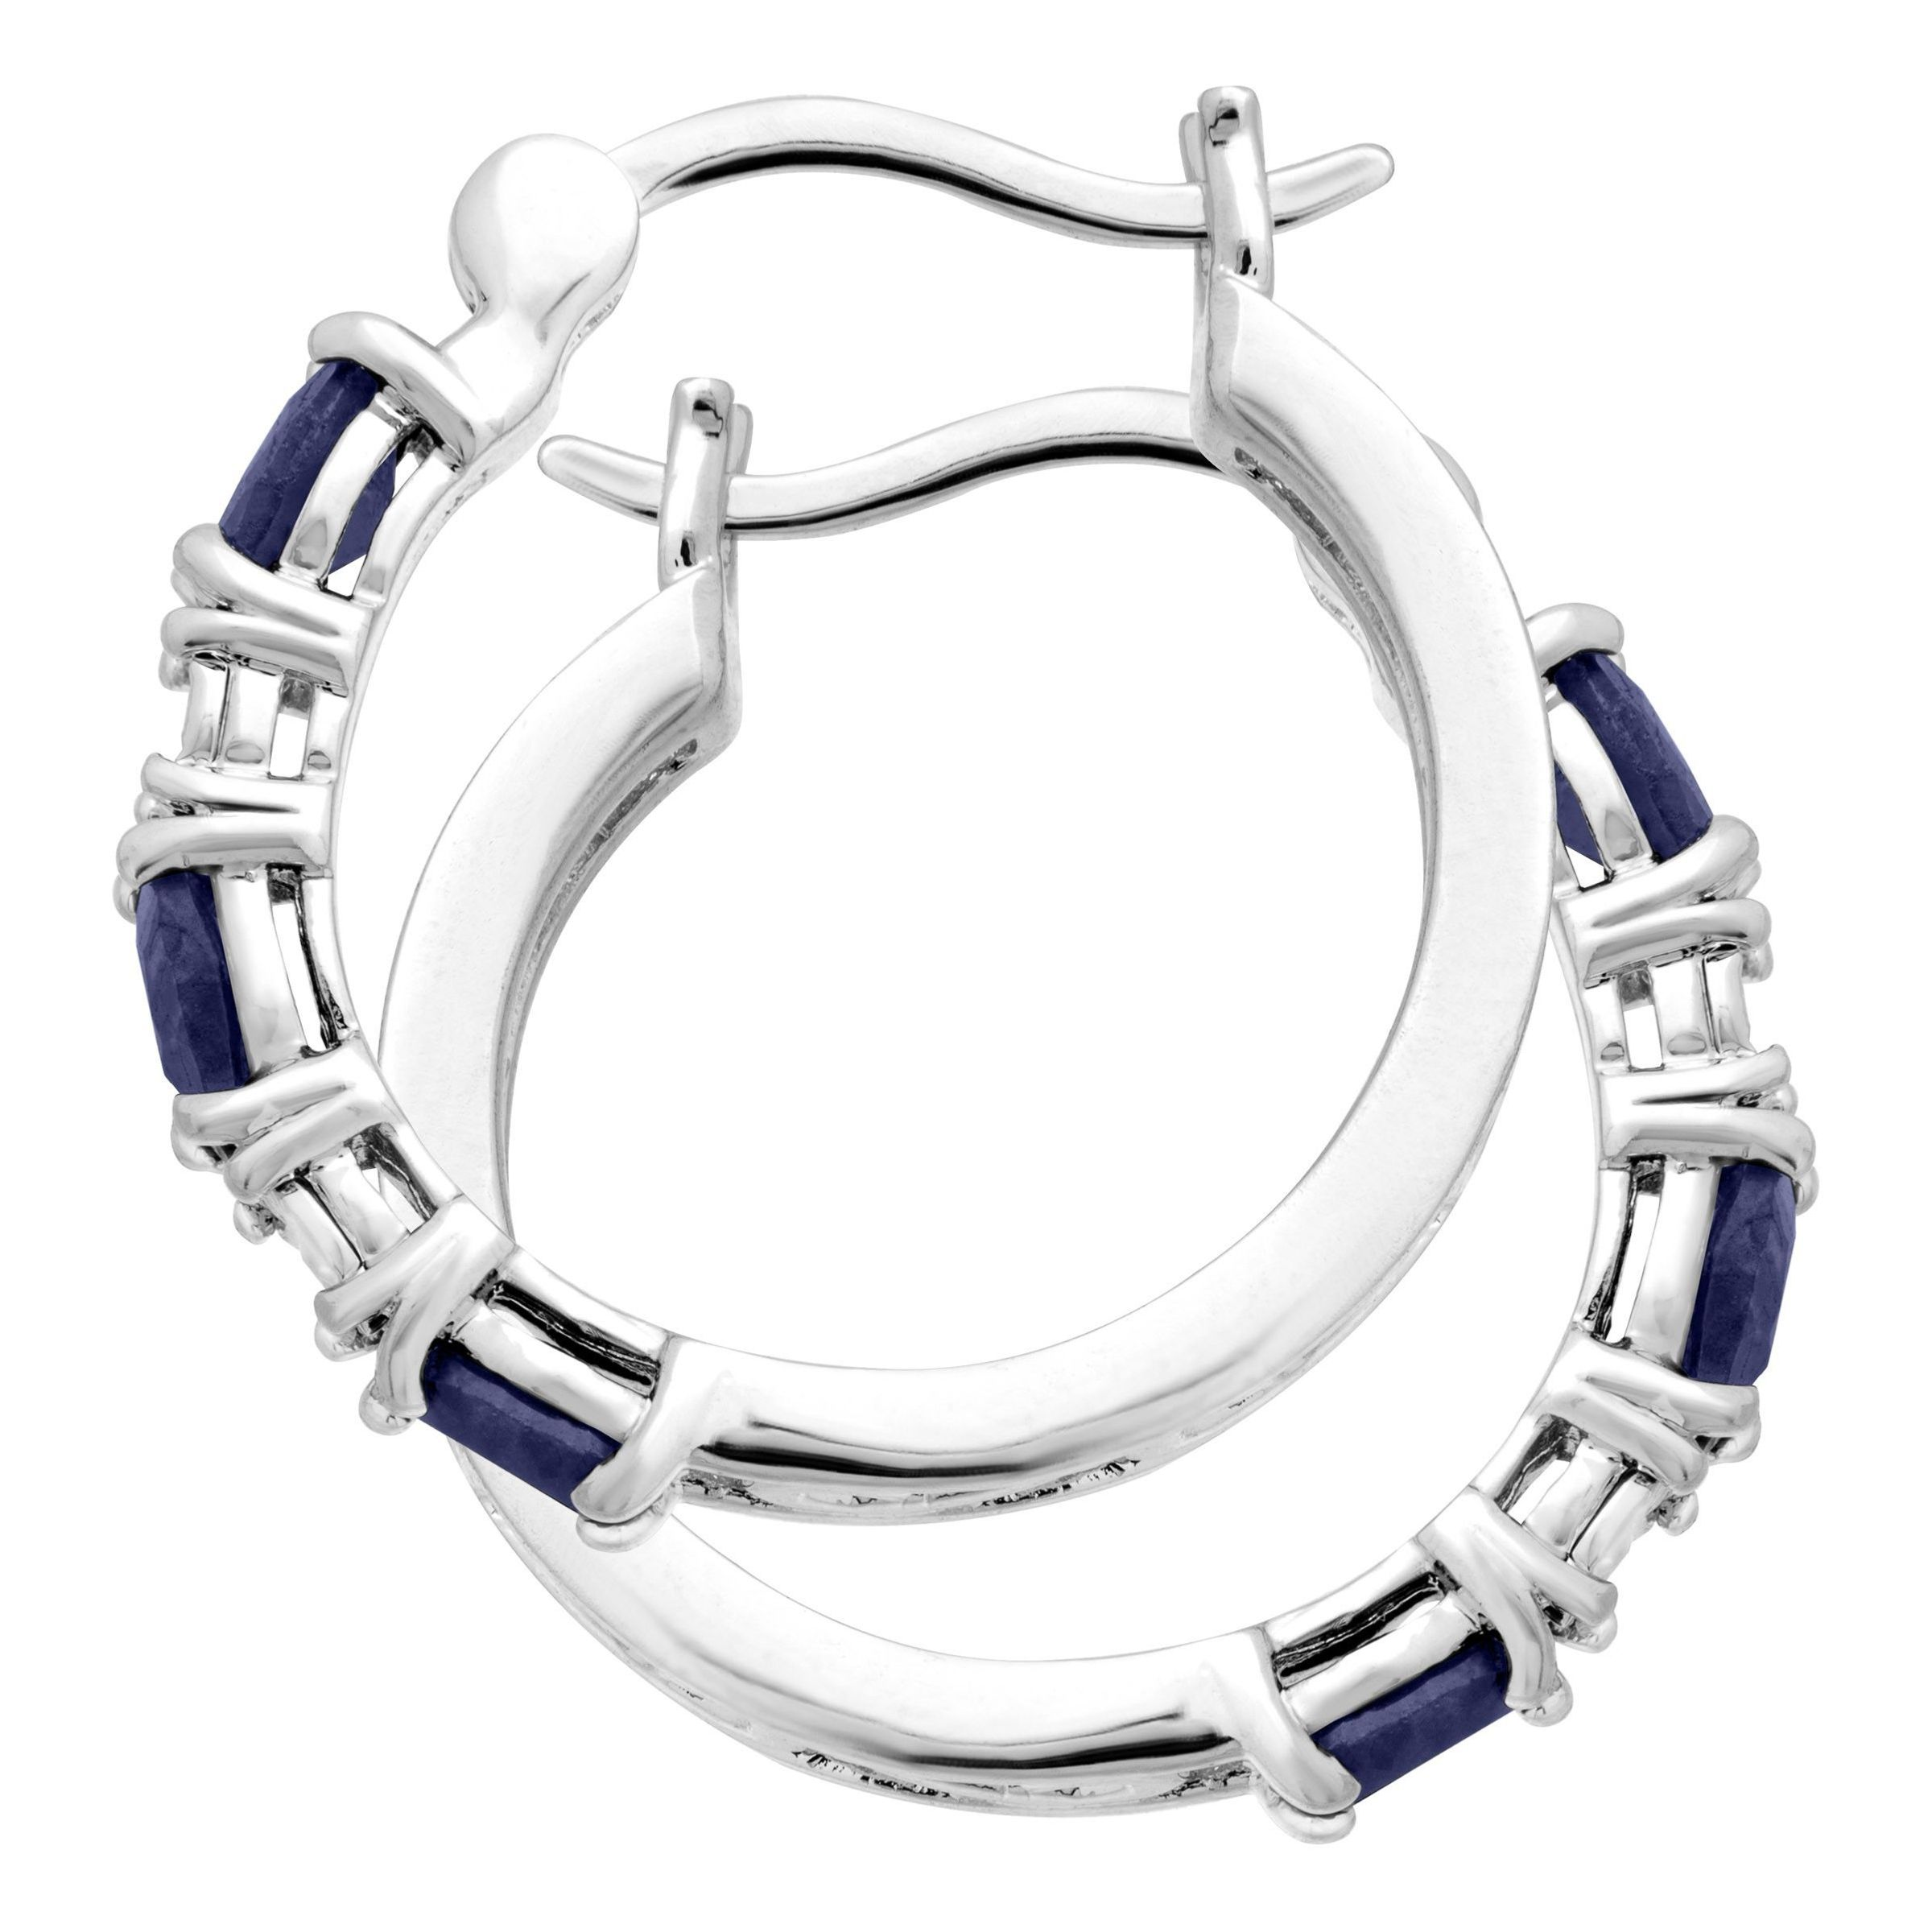 Gemstone-Hoop-Earrings-with-Diamonds-in-Platinum-Plated-Brass thumbnail 15